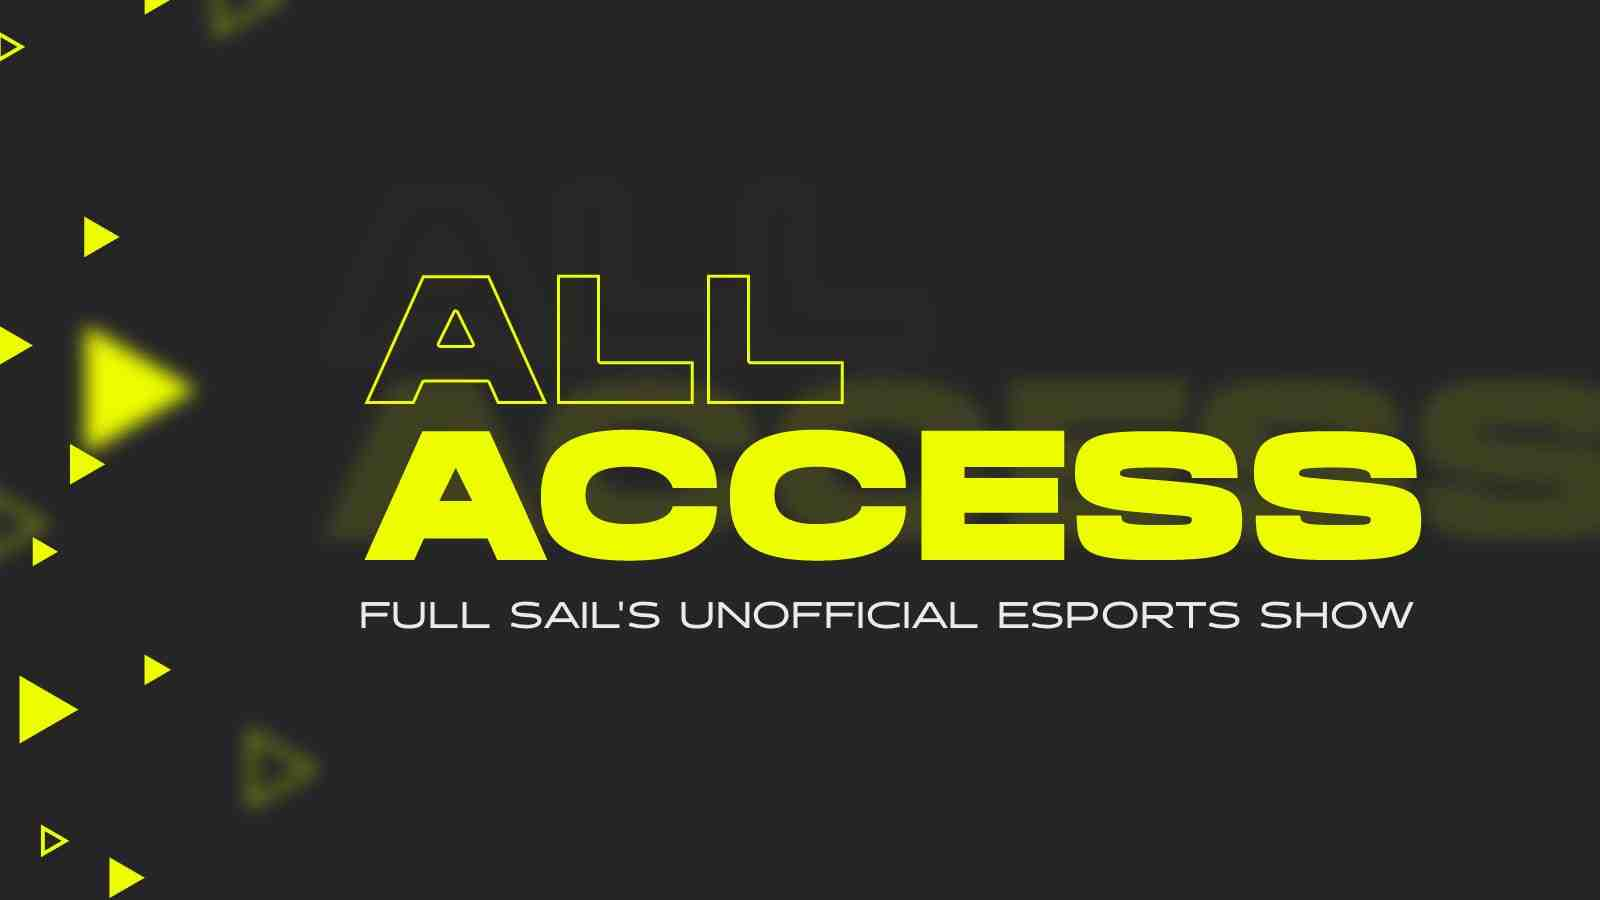 Full Sail Armada Launches 'All Access' Twitch Series - Hero image